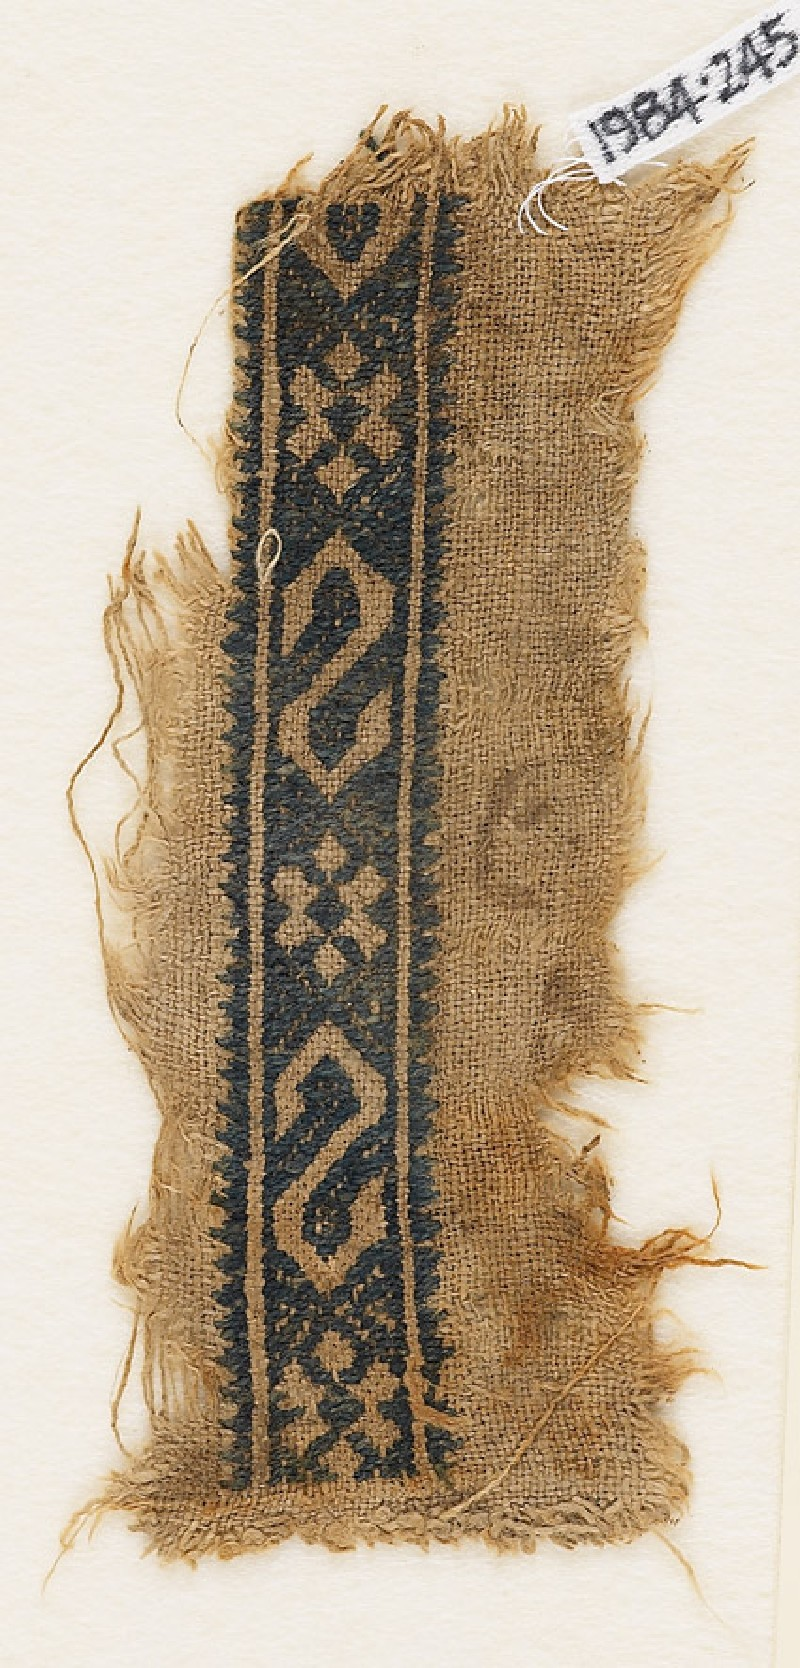 Textile fragment with S-shapes and rosettes